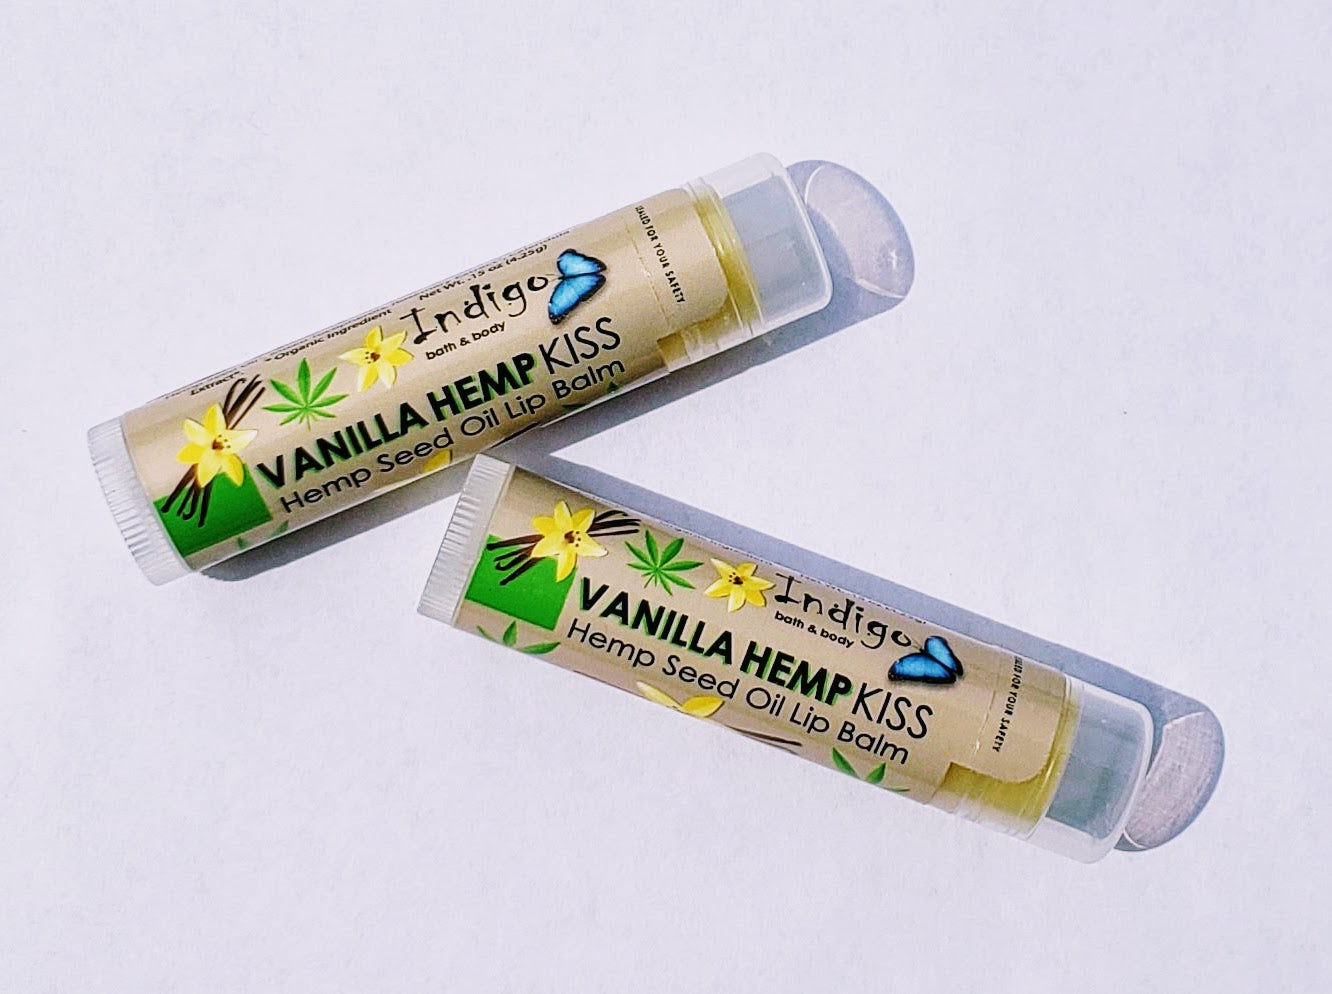 Indigo Bath and Body - Vanilla Hempseed Oil Lip Balm